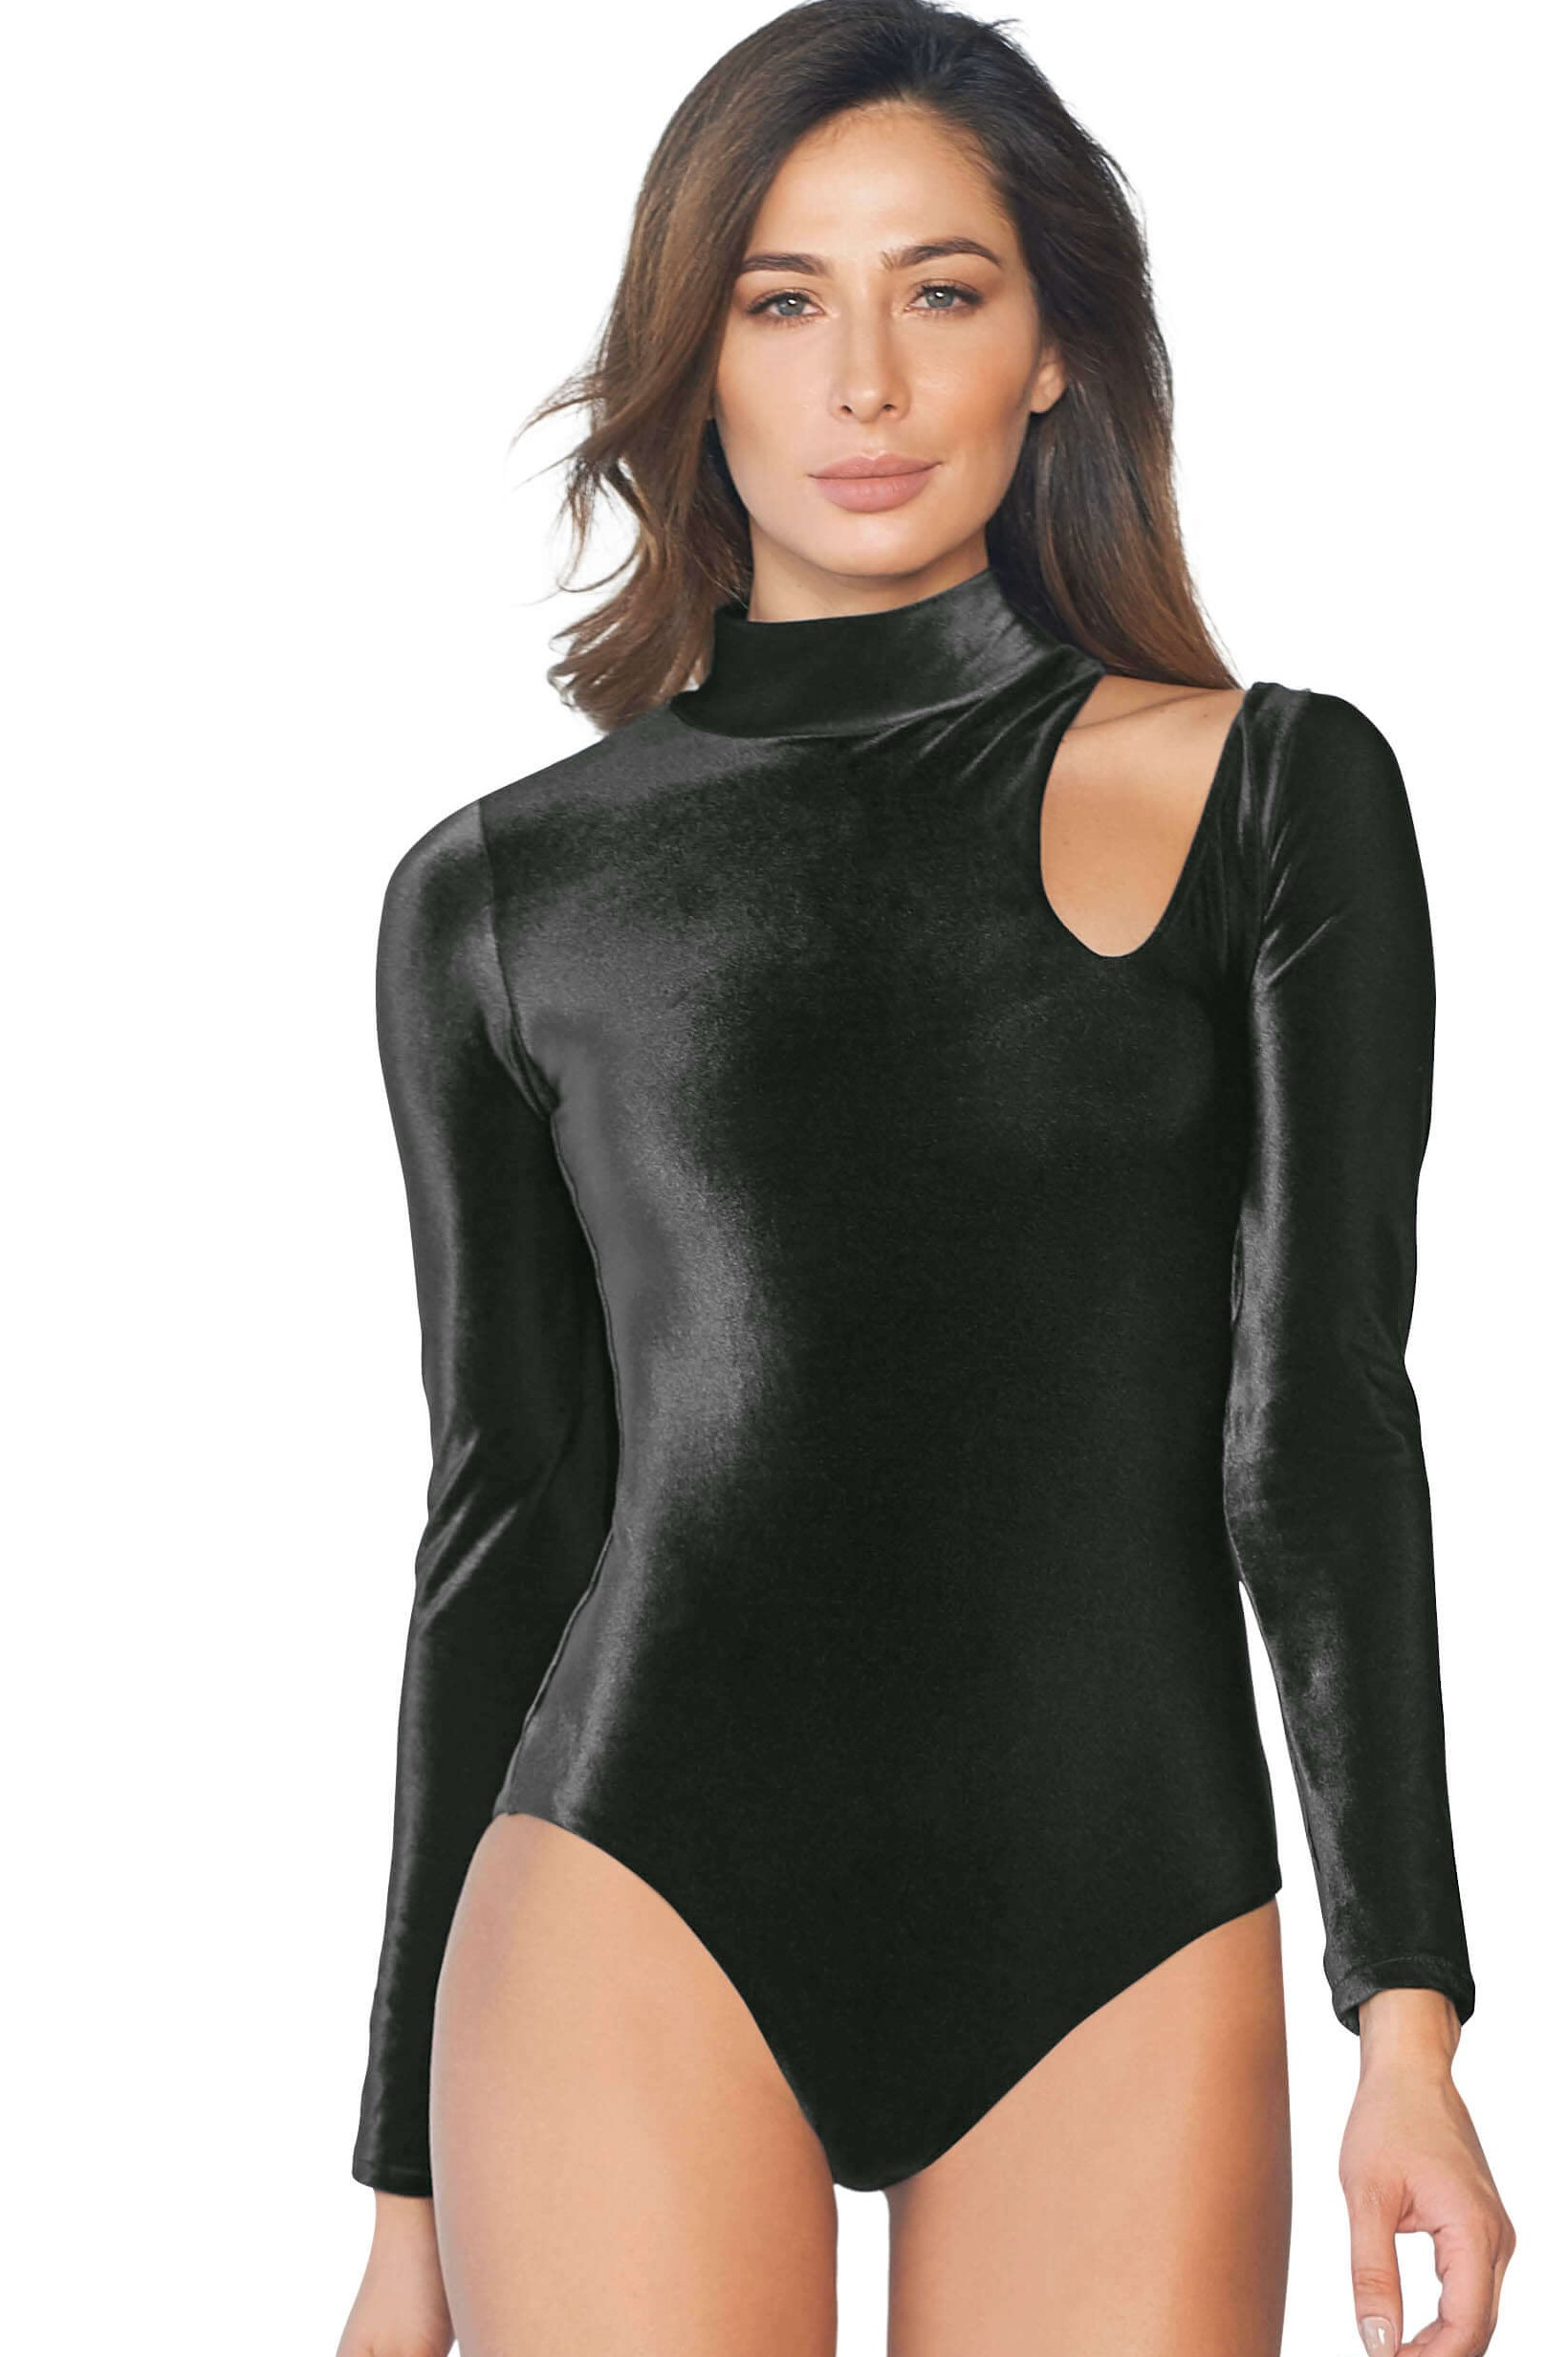 Cosita Linda Kenia Black Velvet Swimsuit Long Sleeves-medium-Zwart